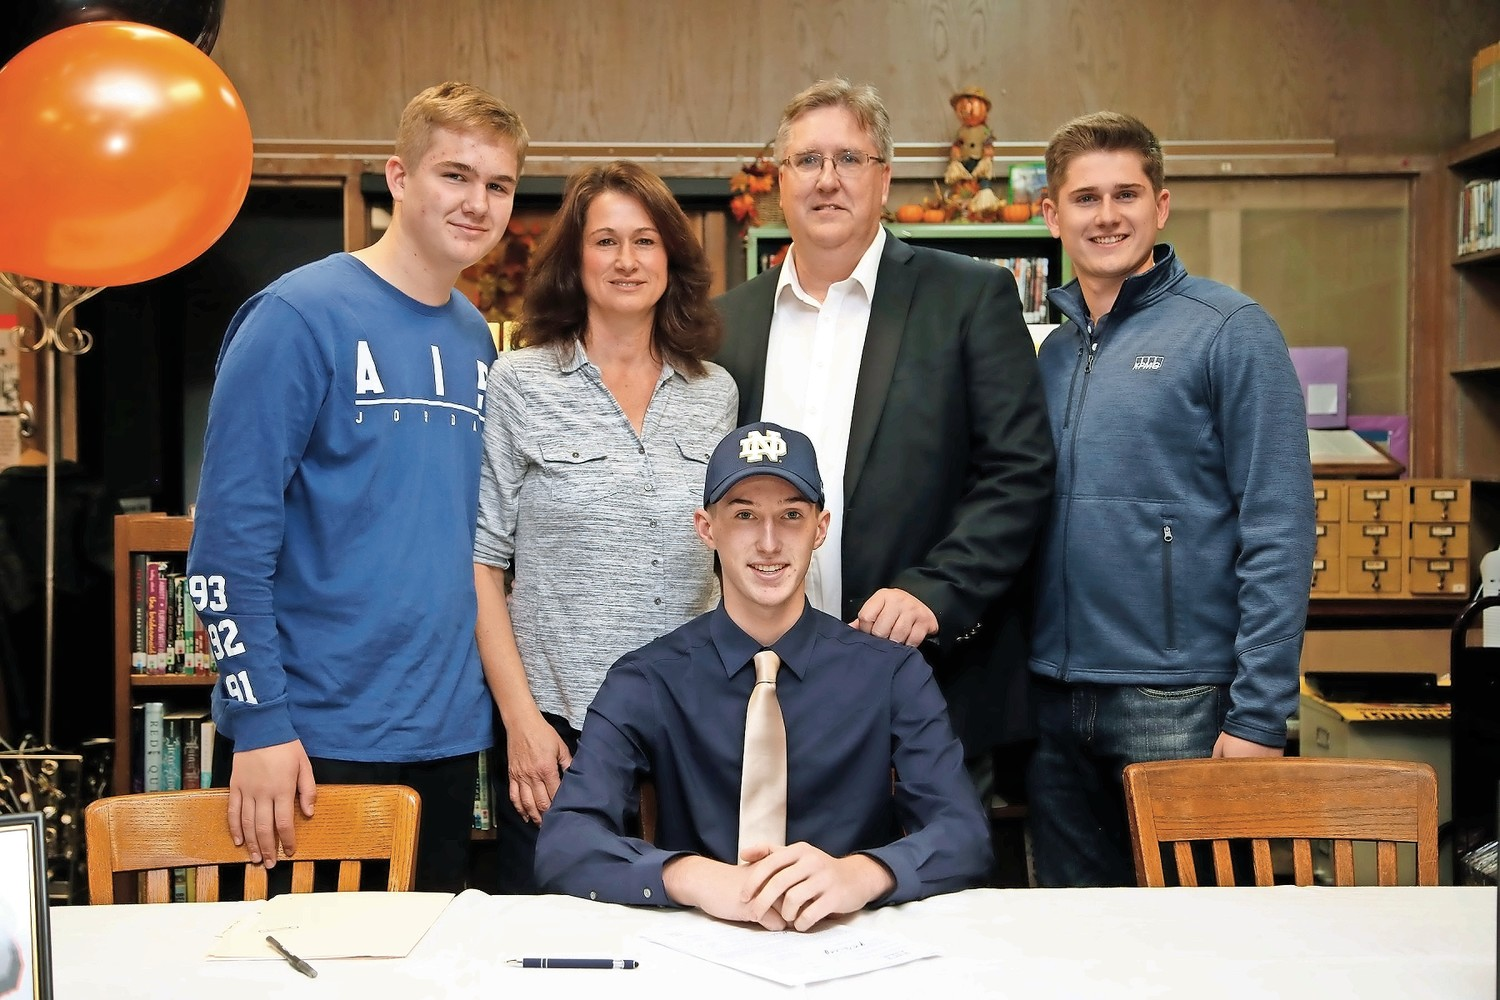 Andrew Machovec, center, with his parents Lisa and John, and brothers Matt, far left, and John, after signing his national letter of intent.